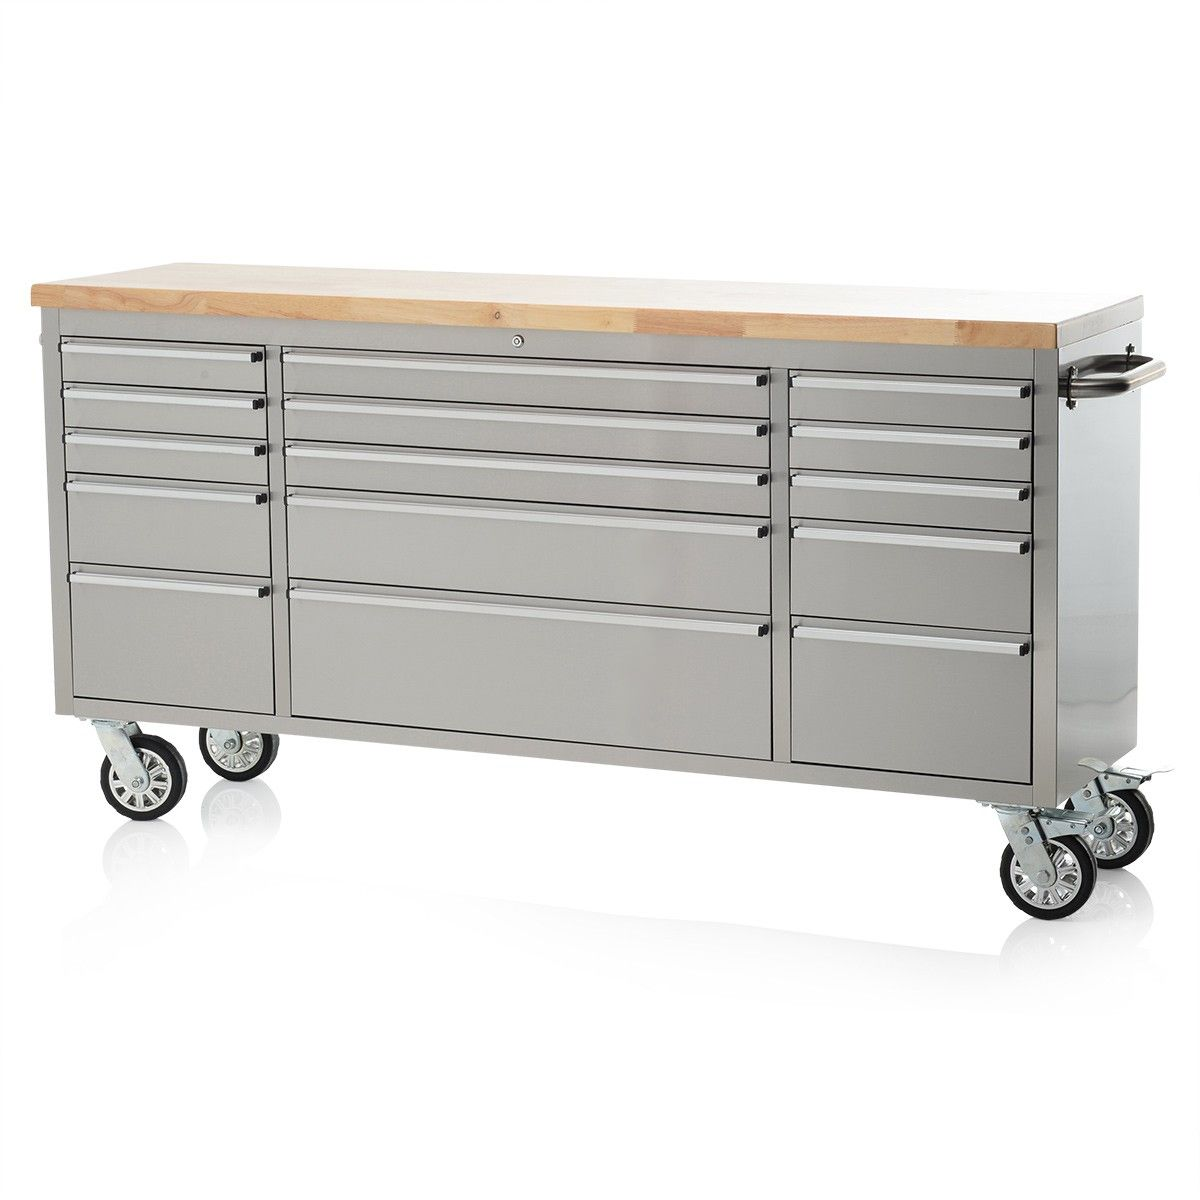 72 Stainless Steel 15 Drawer Work Bench Tool Chest Cabinet Steel Tool Box Stainless Steel Tool Chest Steel Workbench